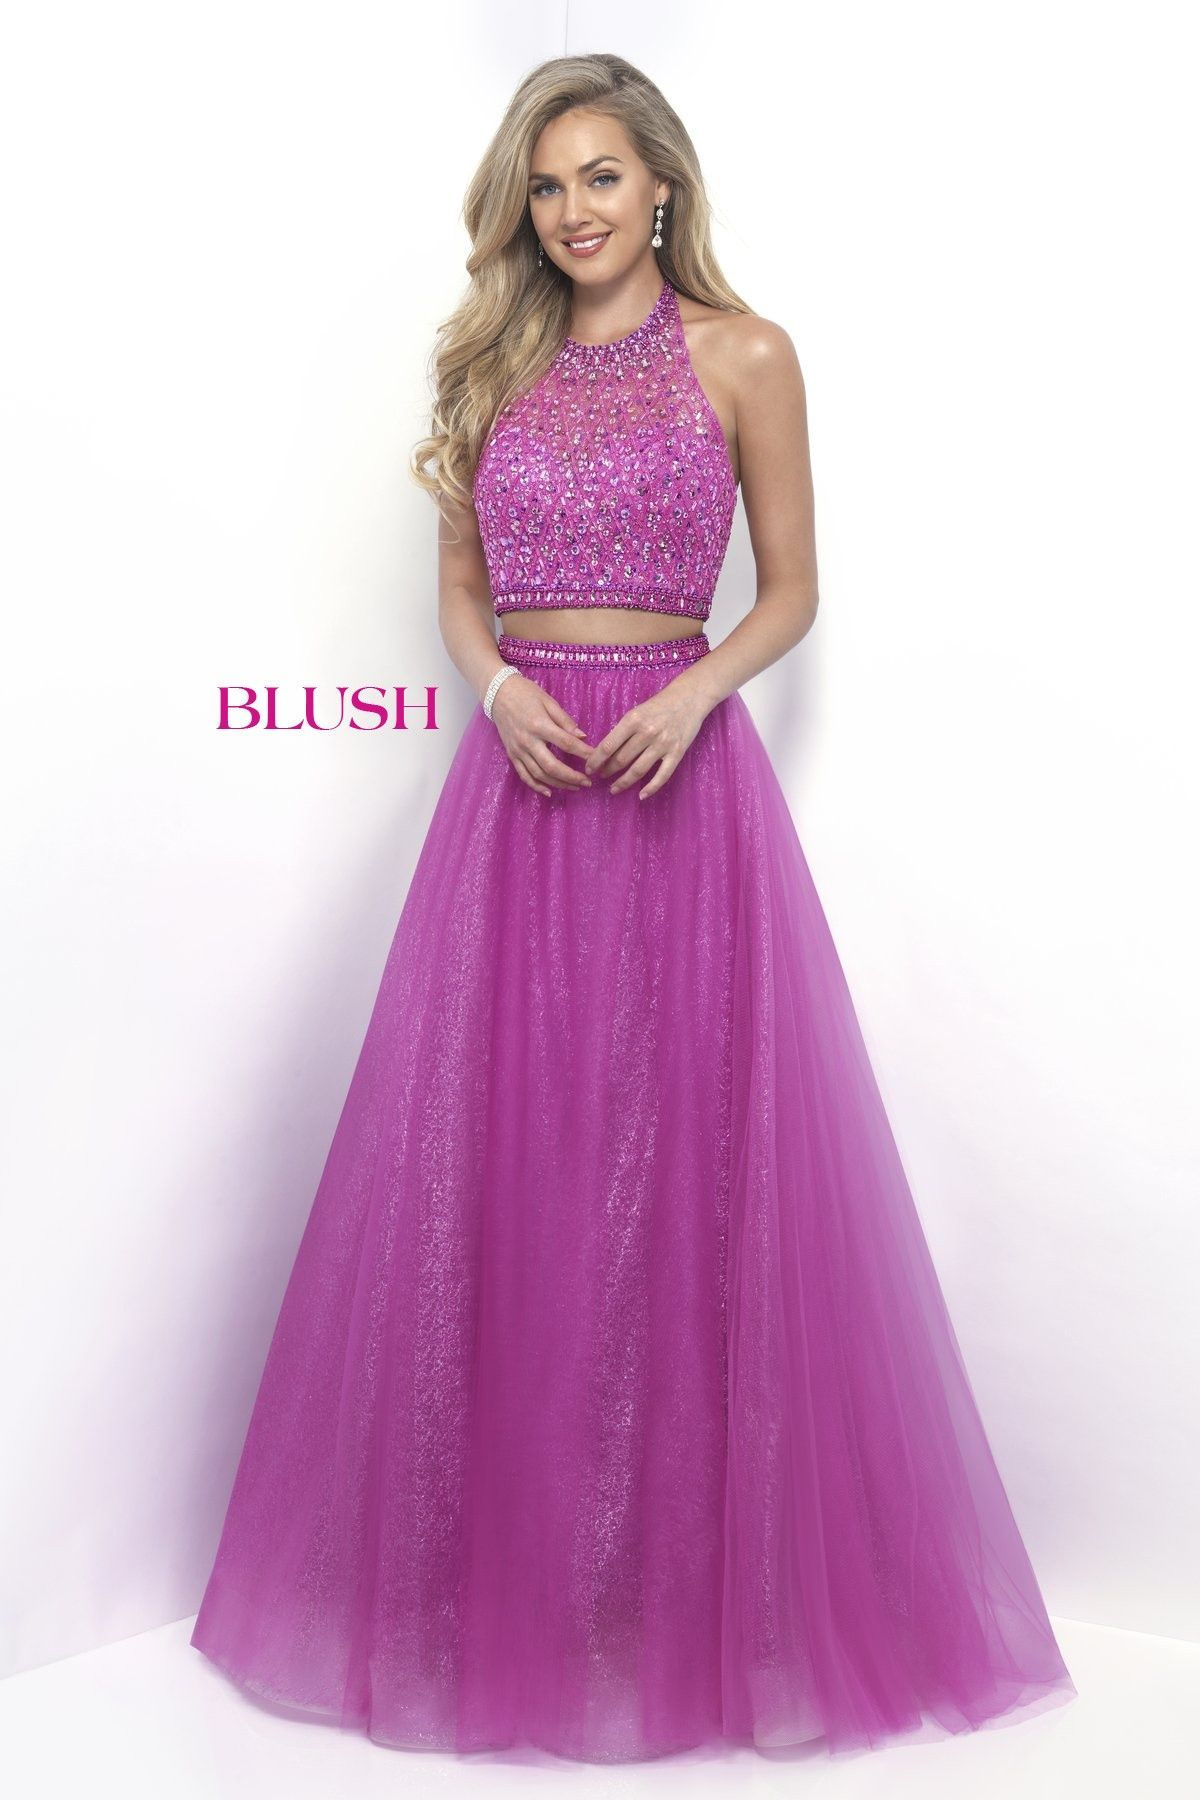 Blush Prom 11232 Party Pink Halter Two Piece Prom Dress | Products ...